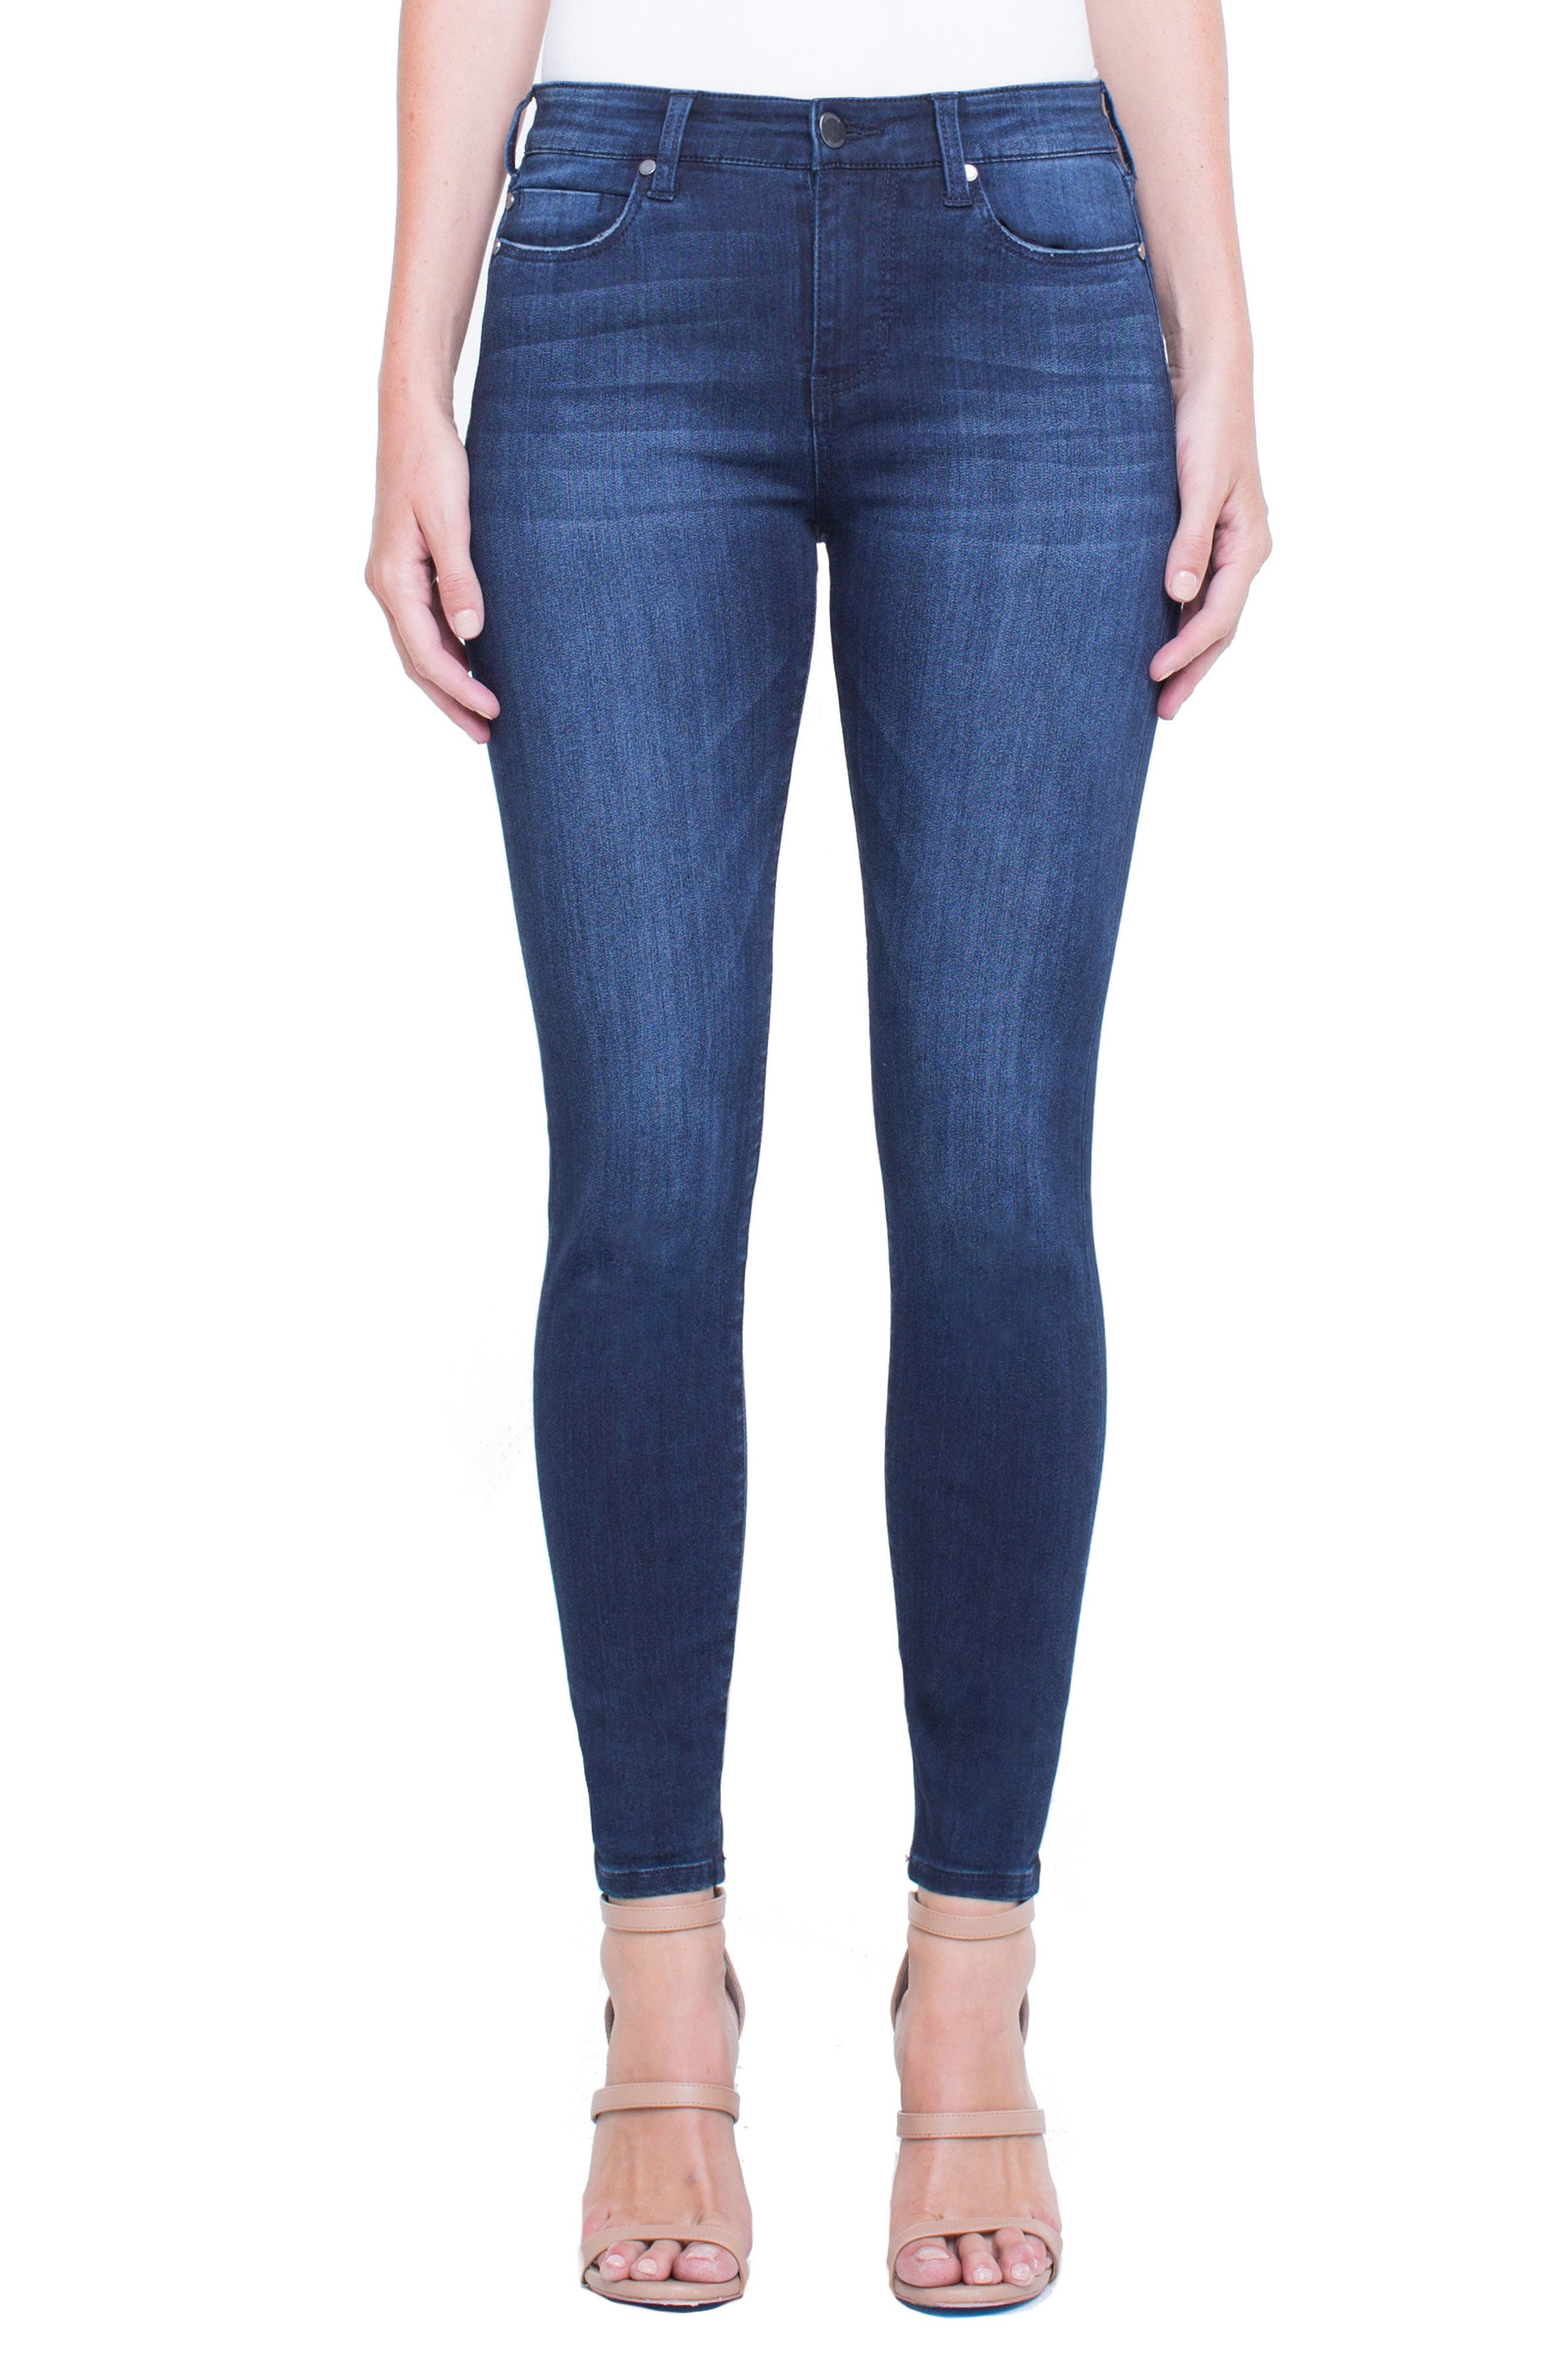 Jeans Company Penny Ankle Skinny Jeans,                             Main thumbnail 1, color,                             405